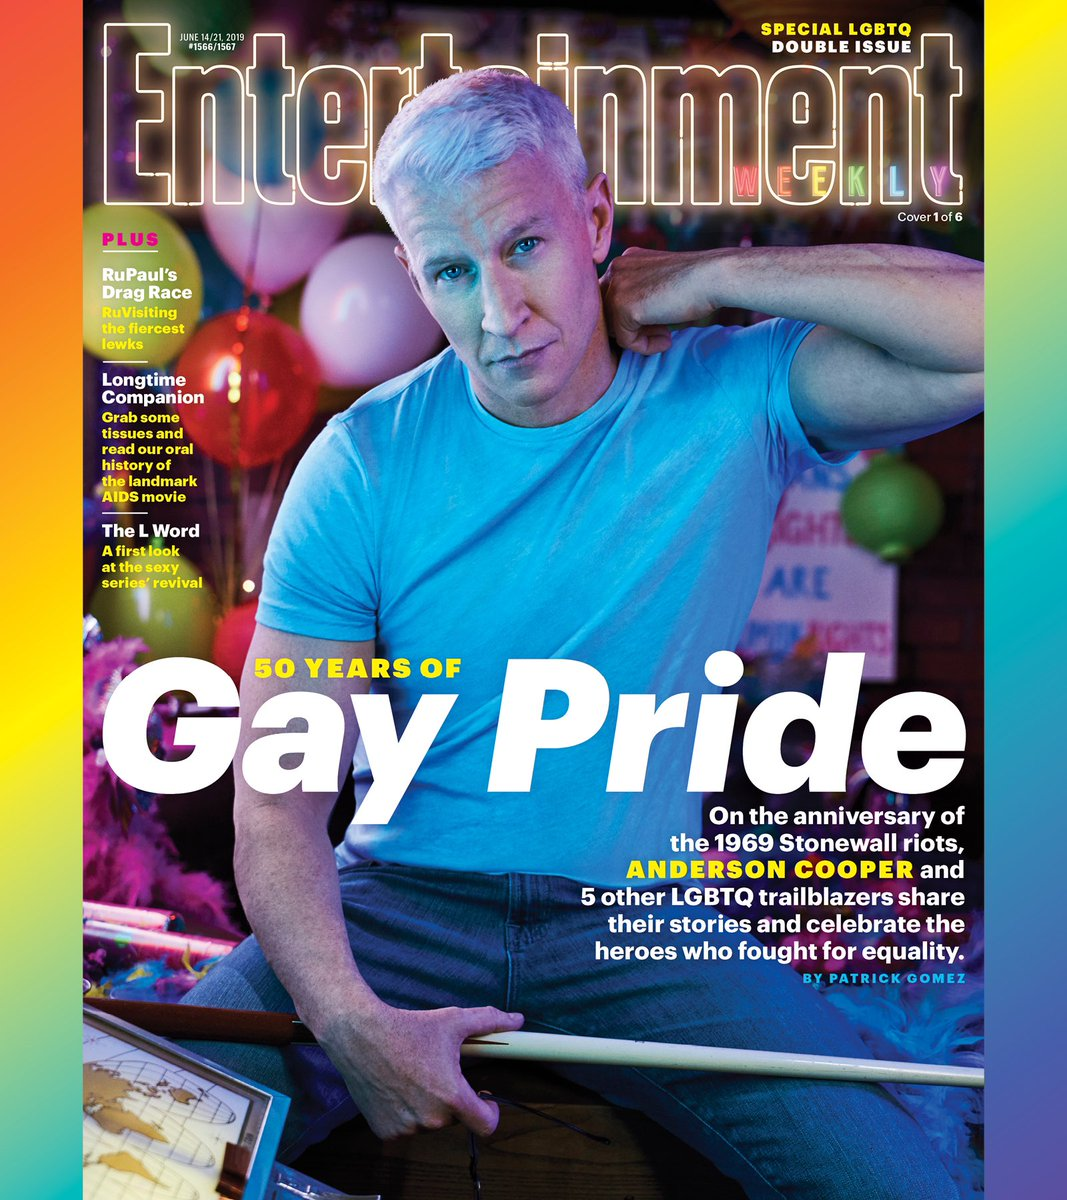 RT @andersoncooper: Thanks for the cover @EW! https://t.co/bk5dYEggMx